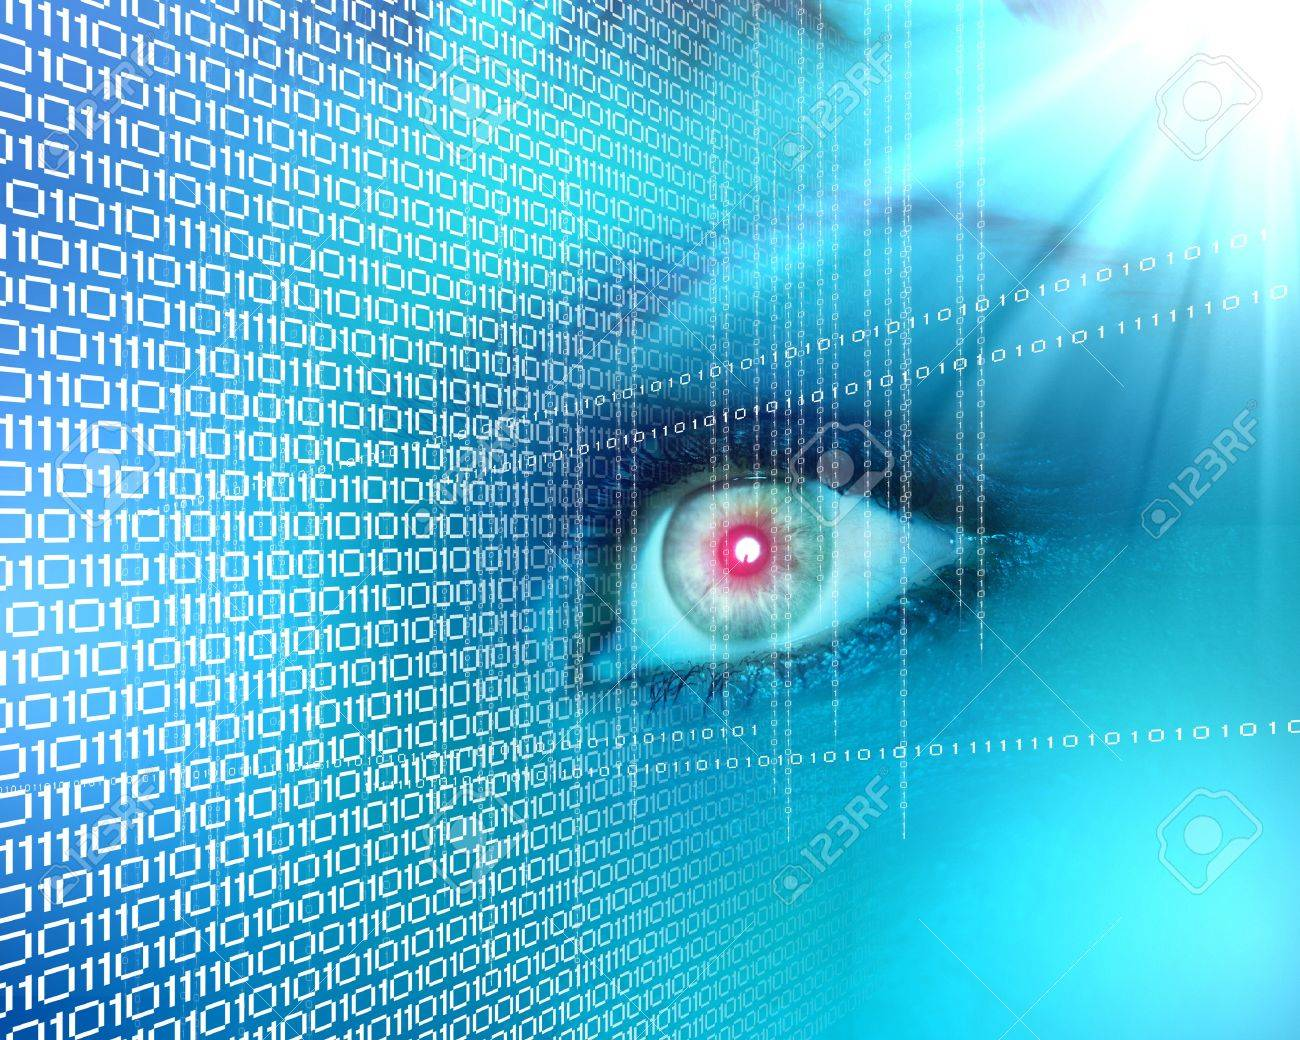 Eye viewing digital information represented by ones and zeros Stock Photo - 15628620